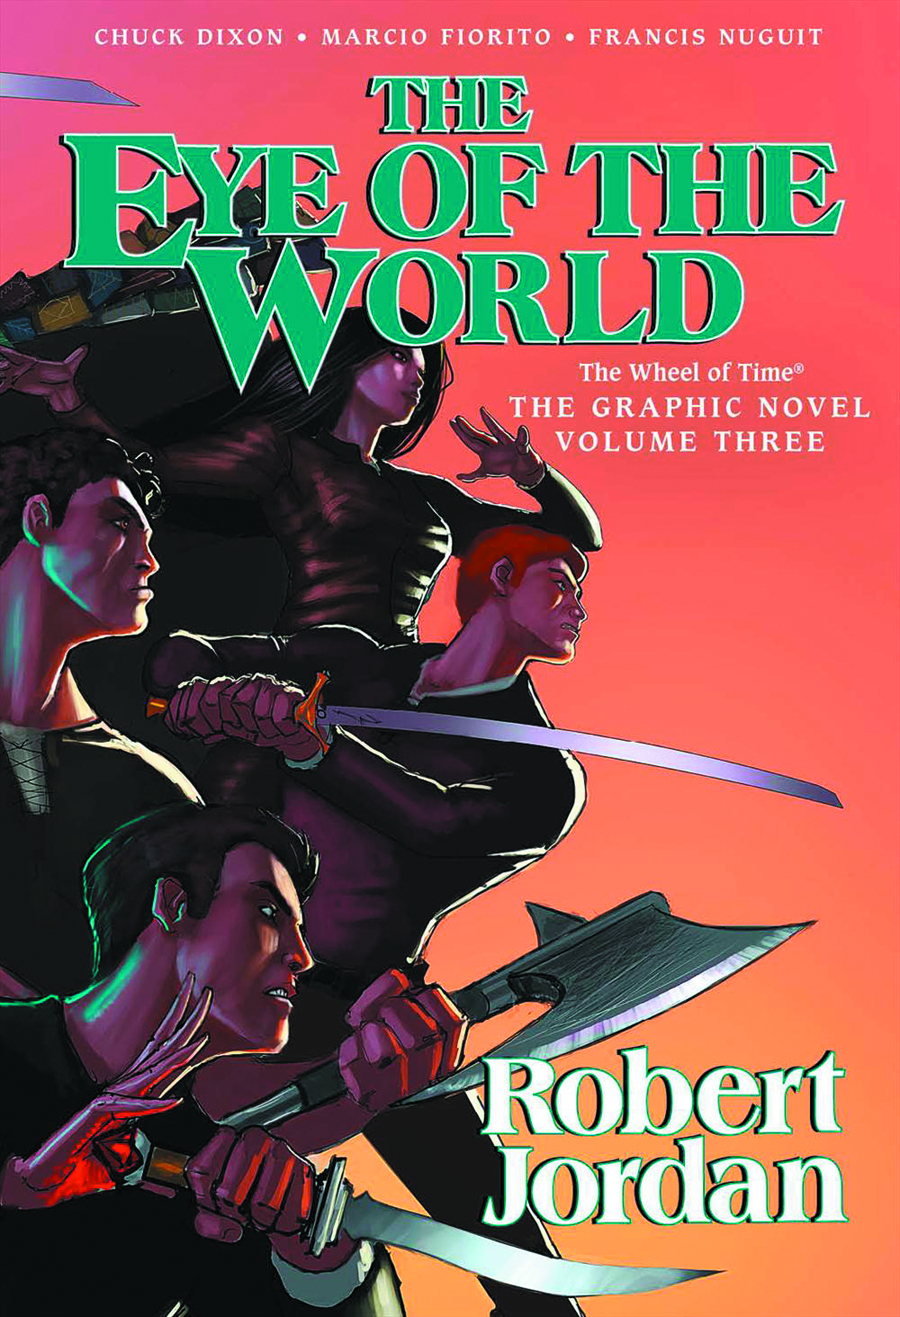 ROBERT JORDAN EYE OF THE WORLD HC VOL 03